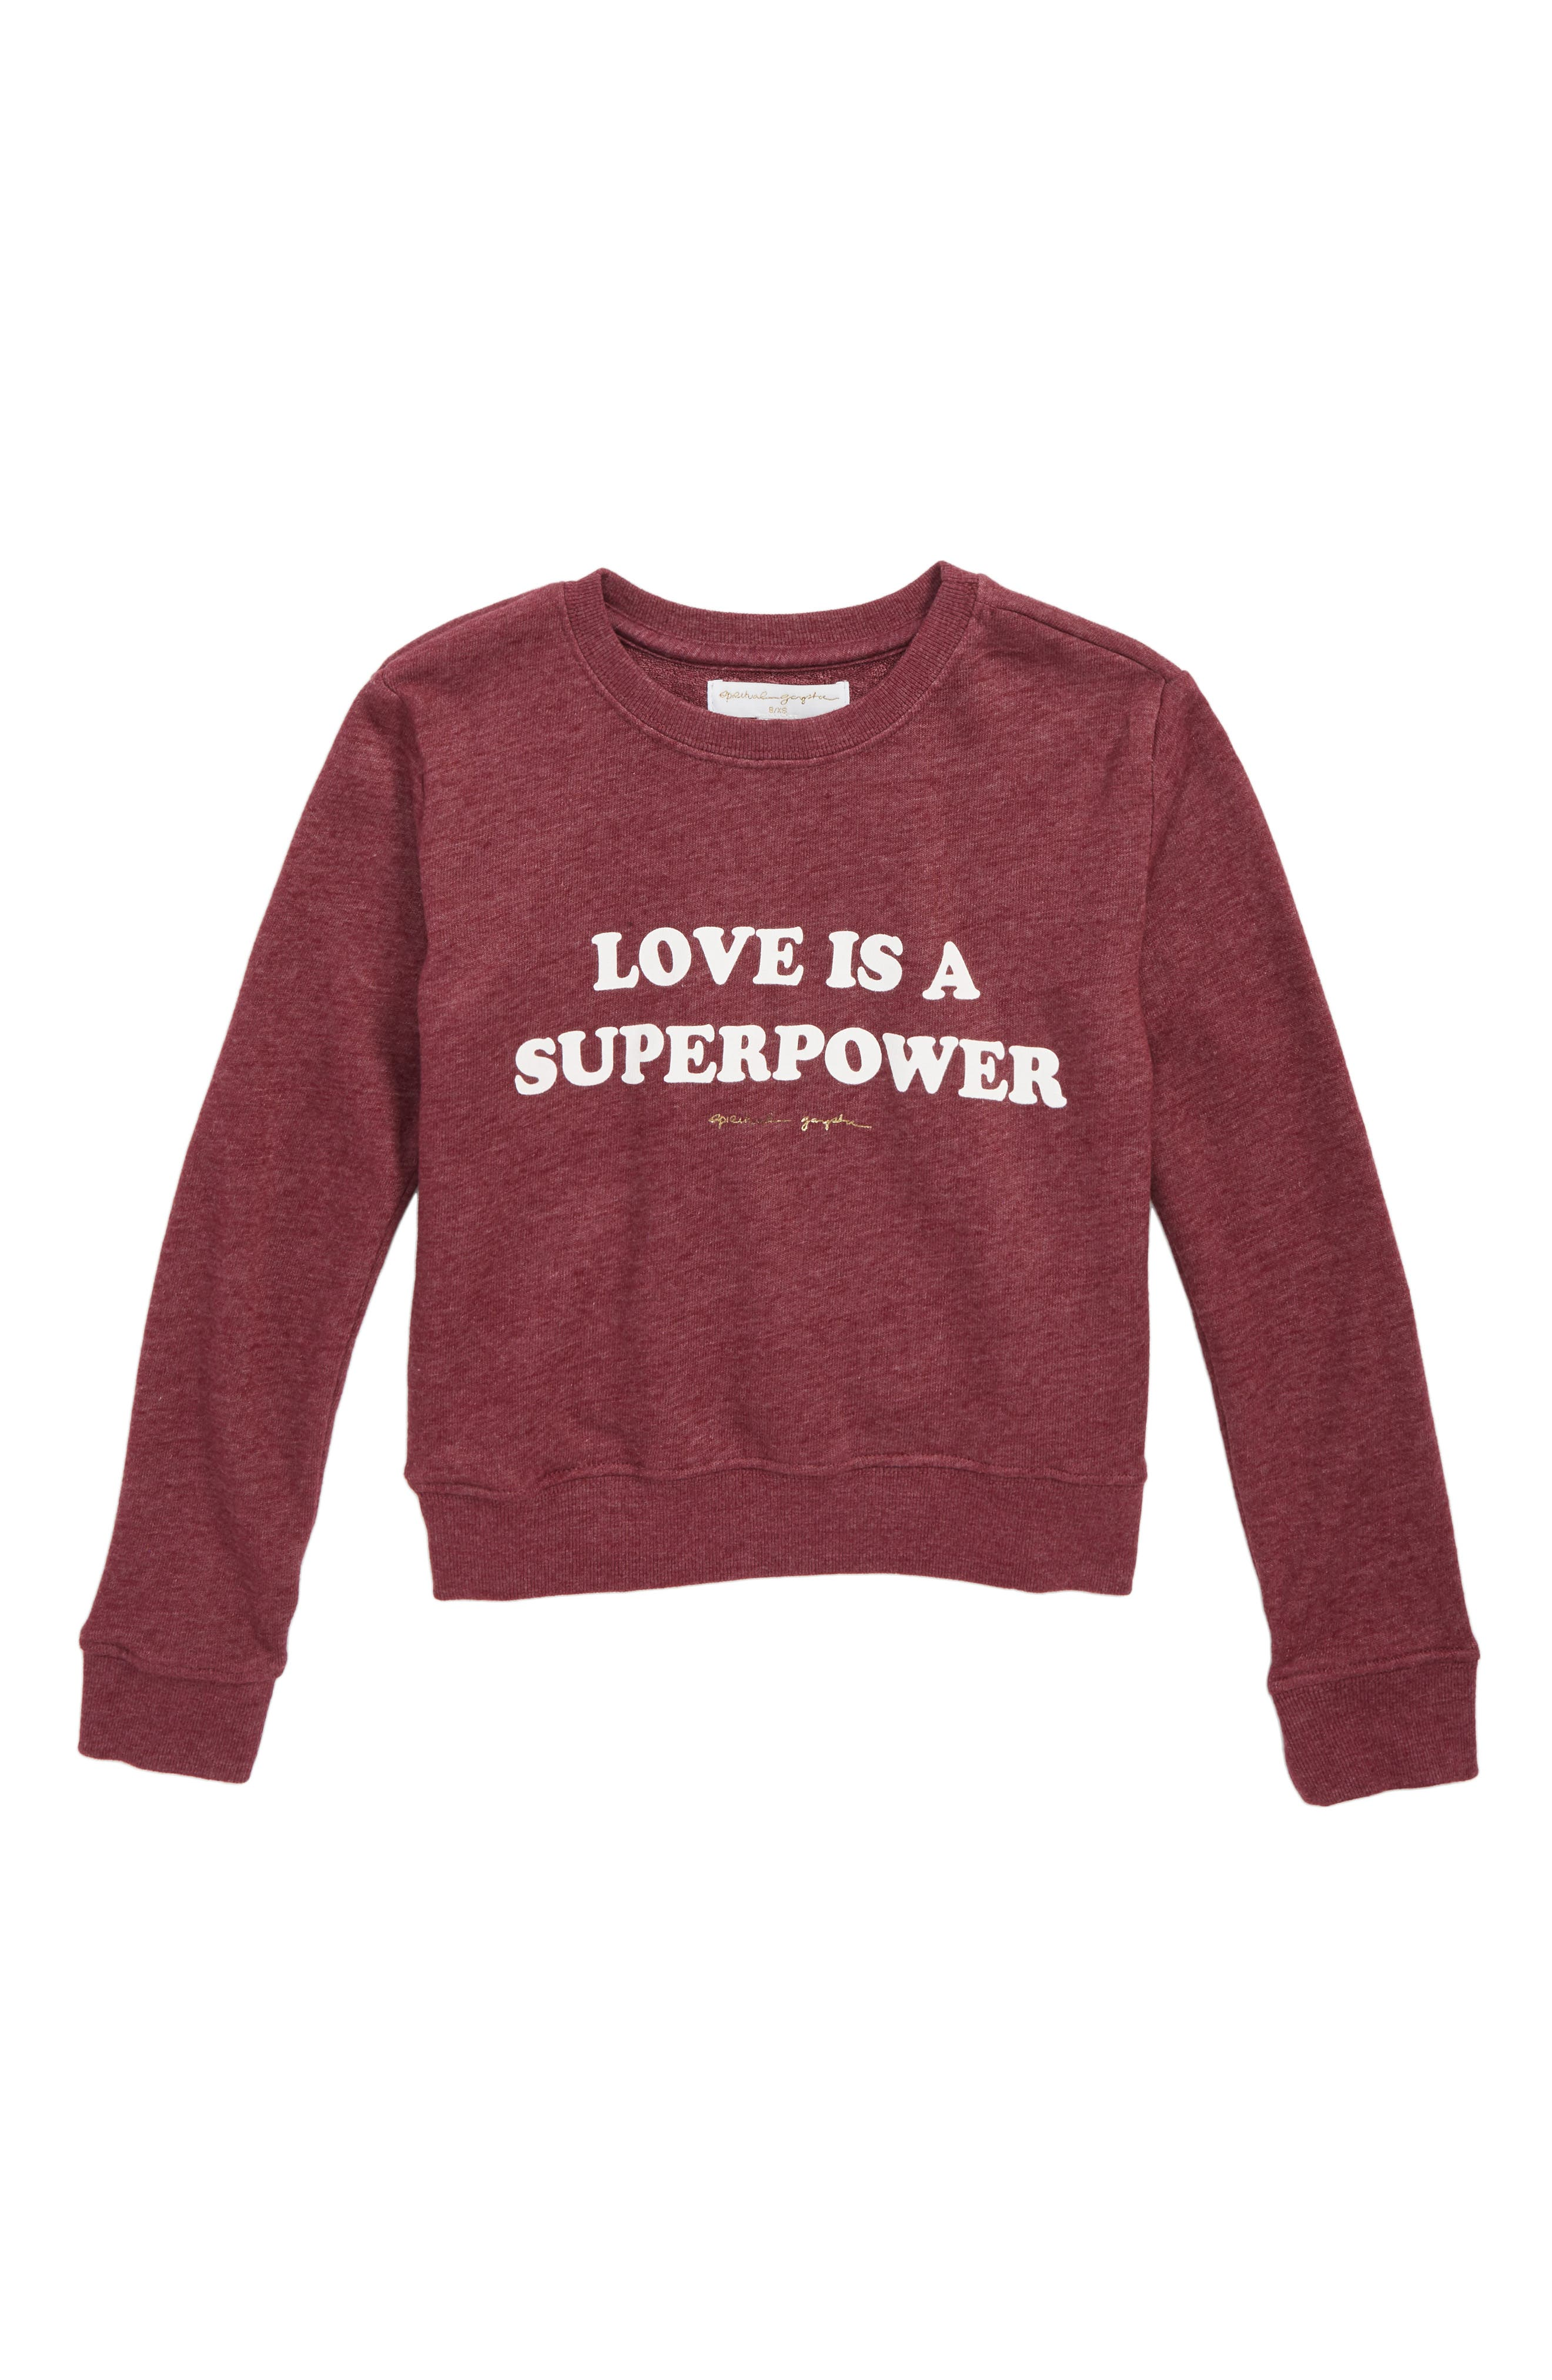 Superpower Crewneck Sweater,                             Main thumbnail 1, color,                             AMOR